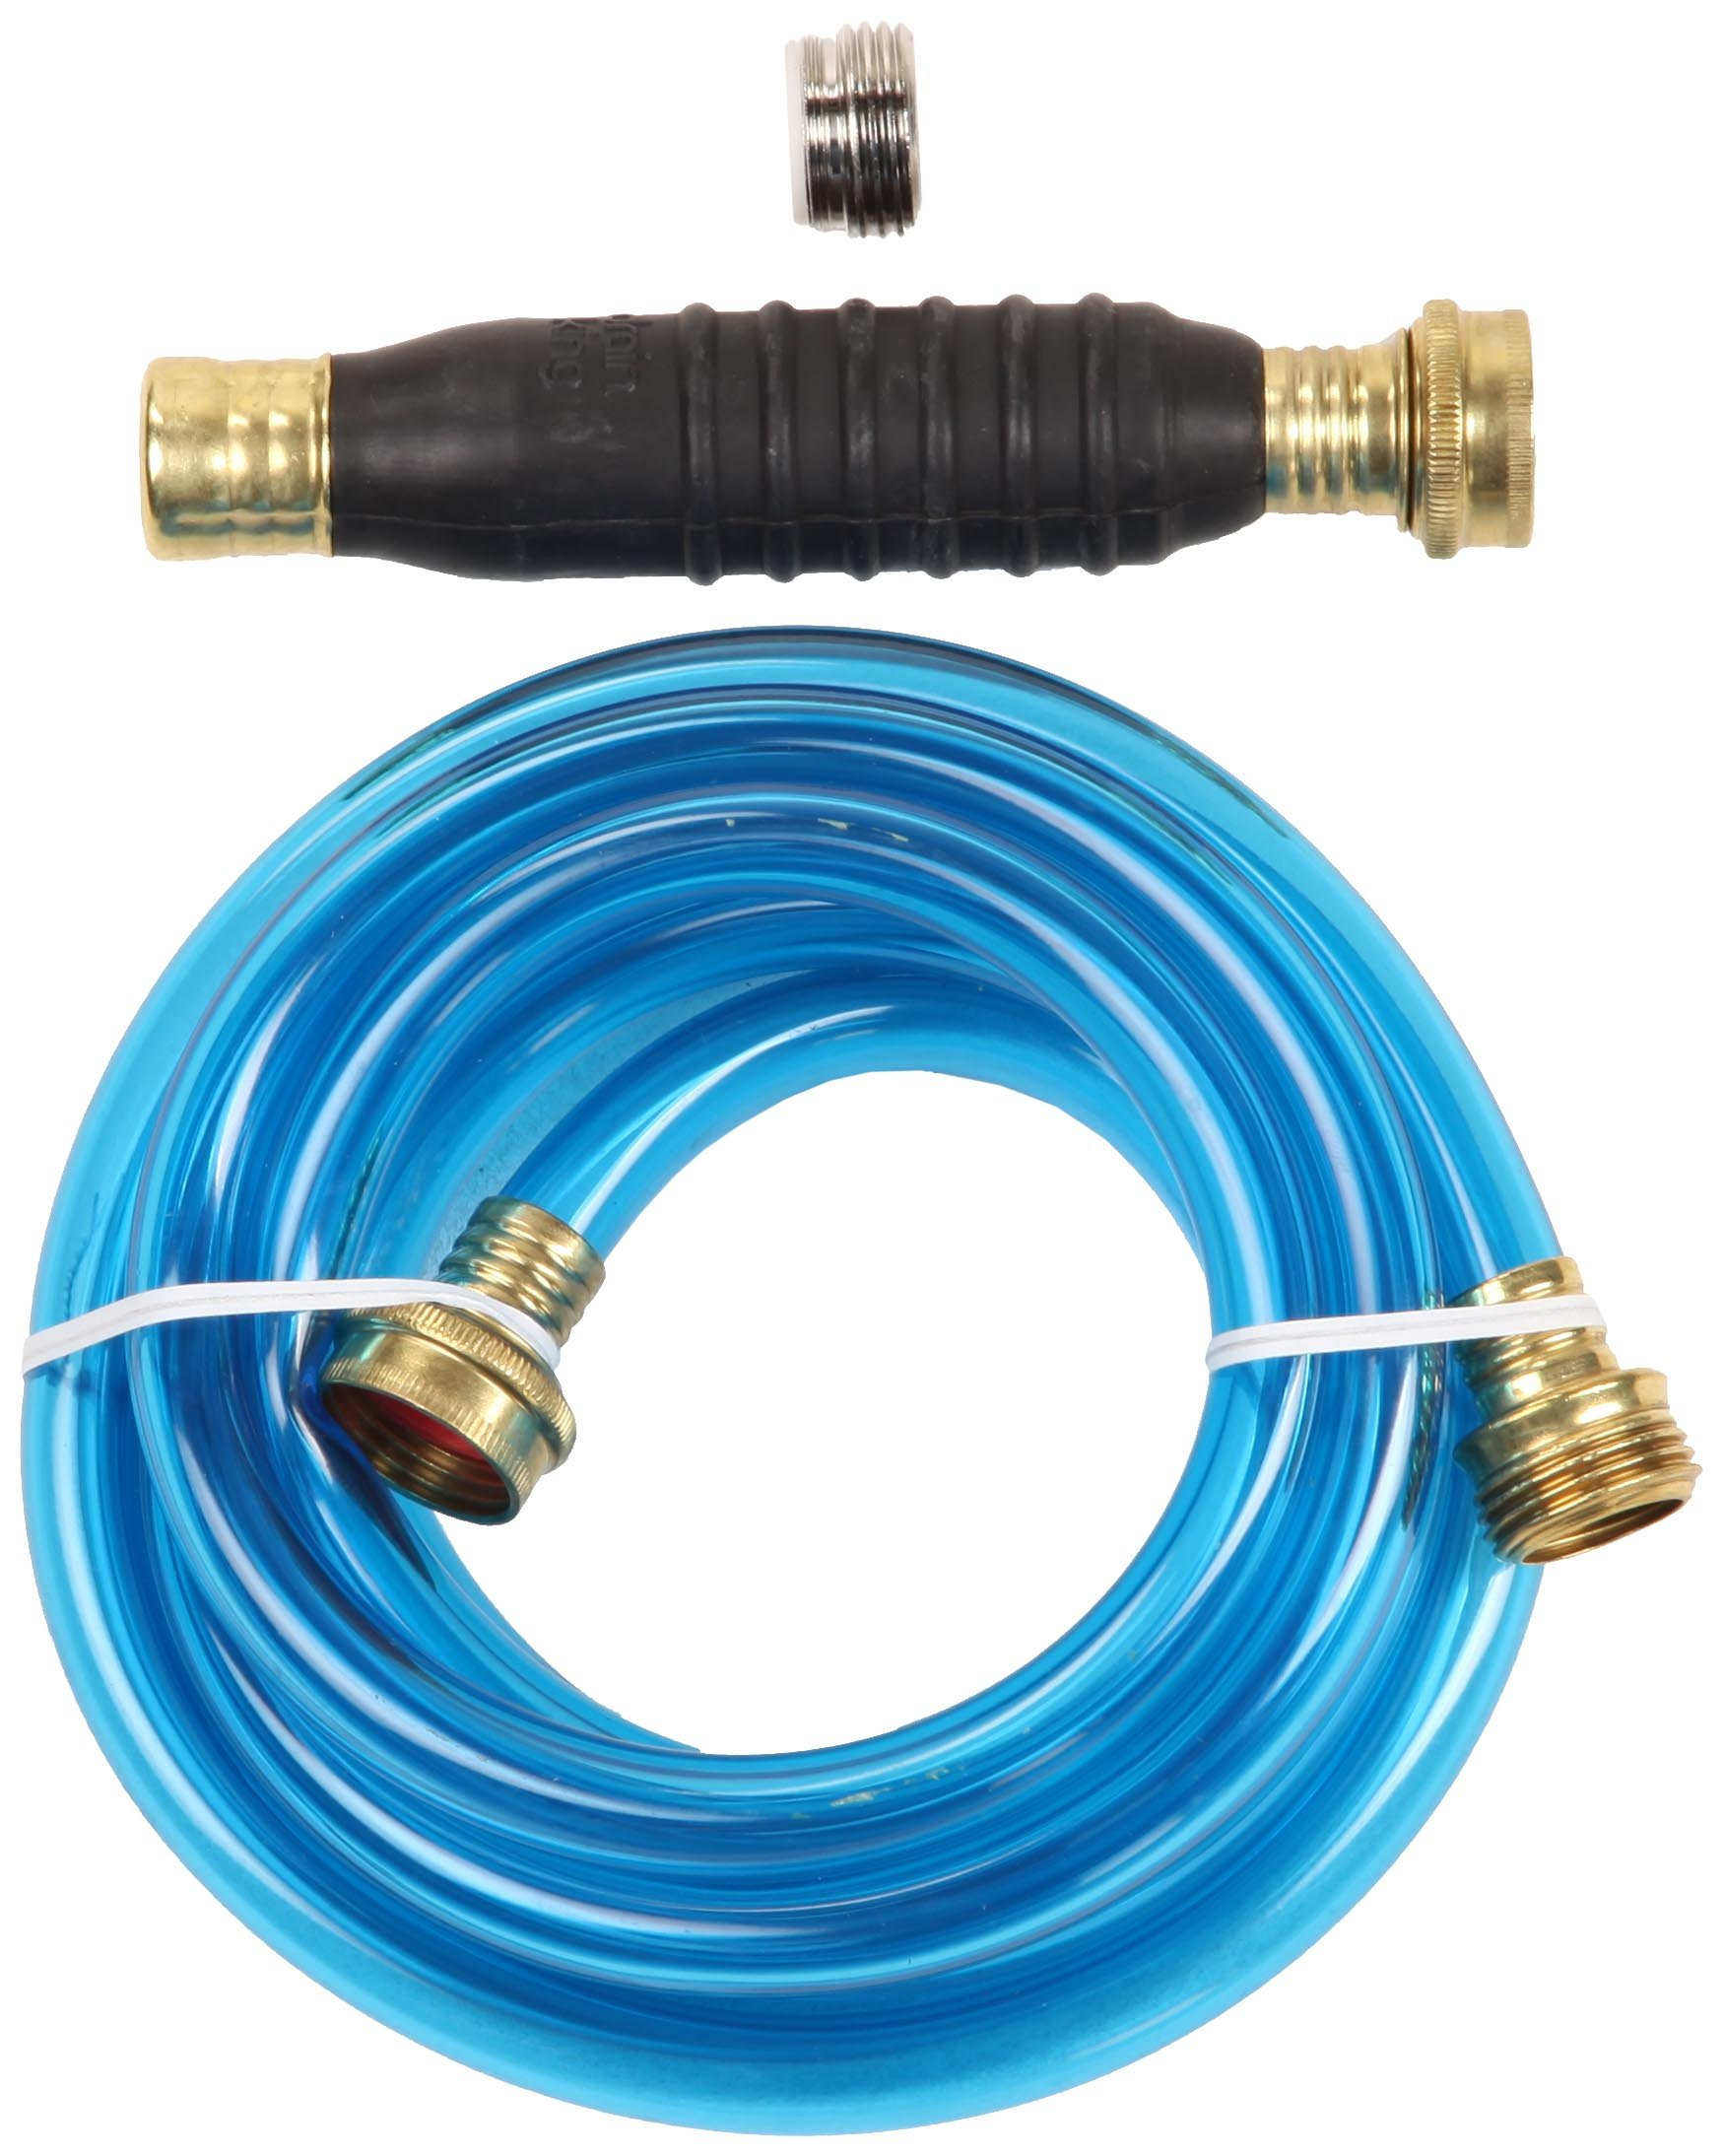 G.T. Water Products, Inc. 340 Drain King All in One Kit, 1-1/2-Inch to 3-Inch by G.T. Water Products, Inc.